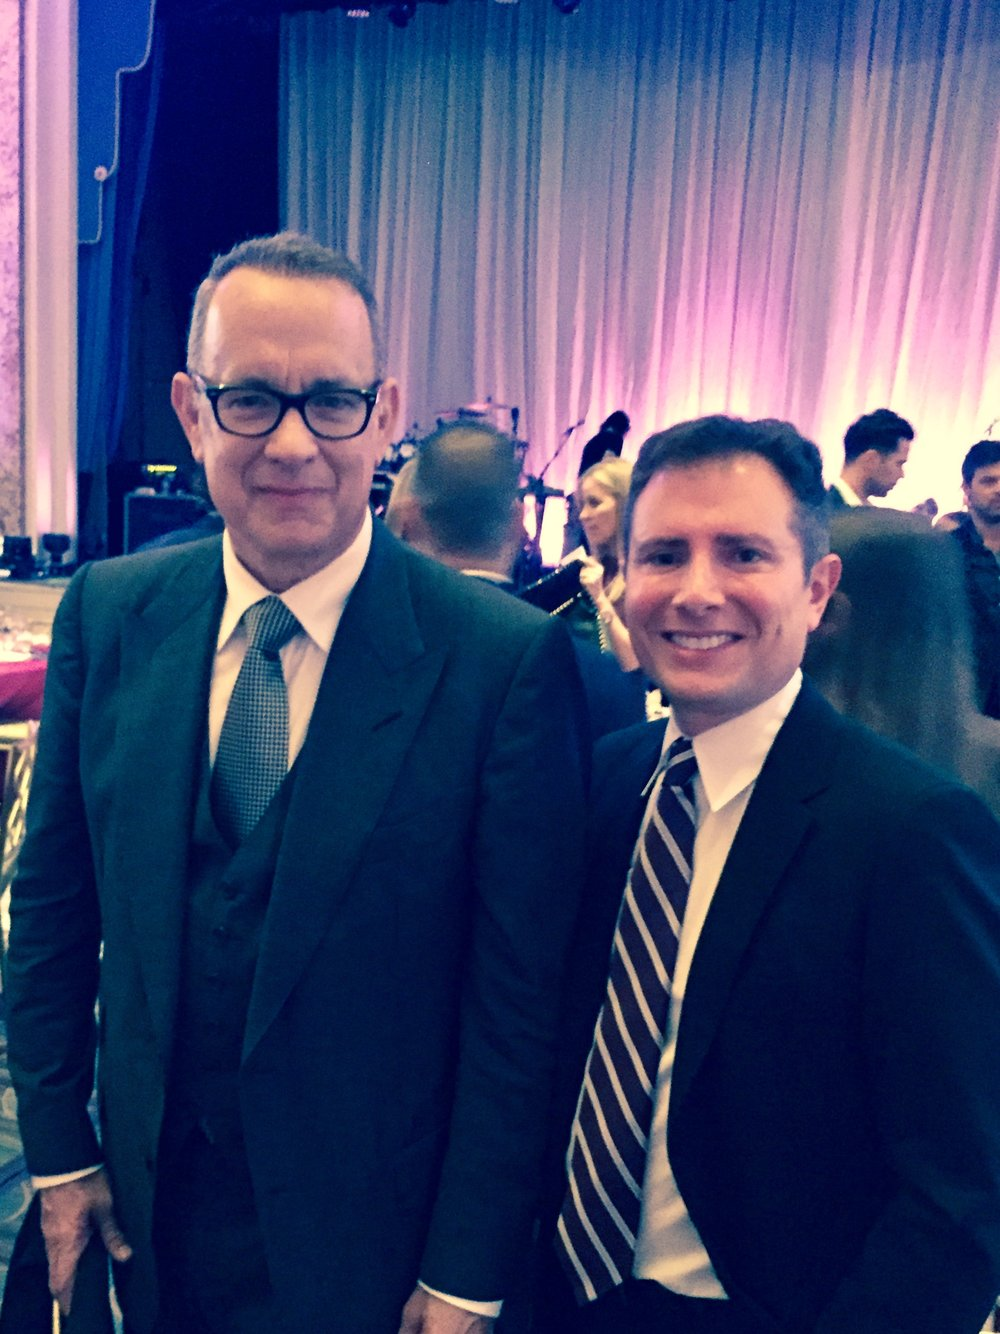 With Tom Hanks